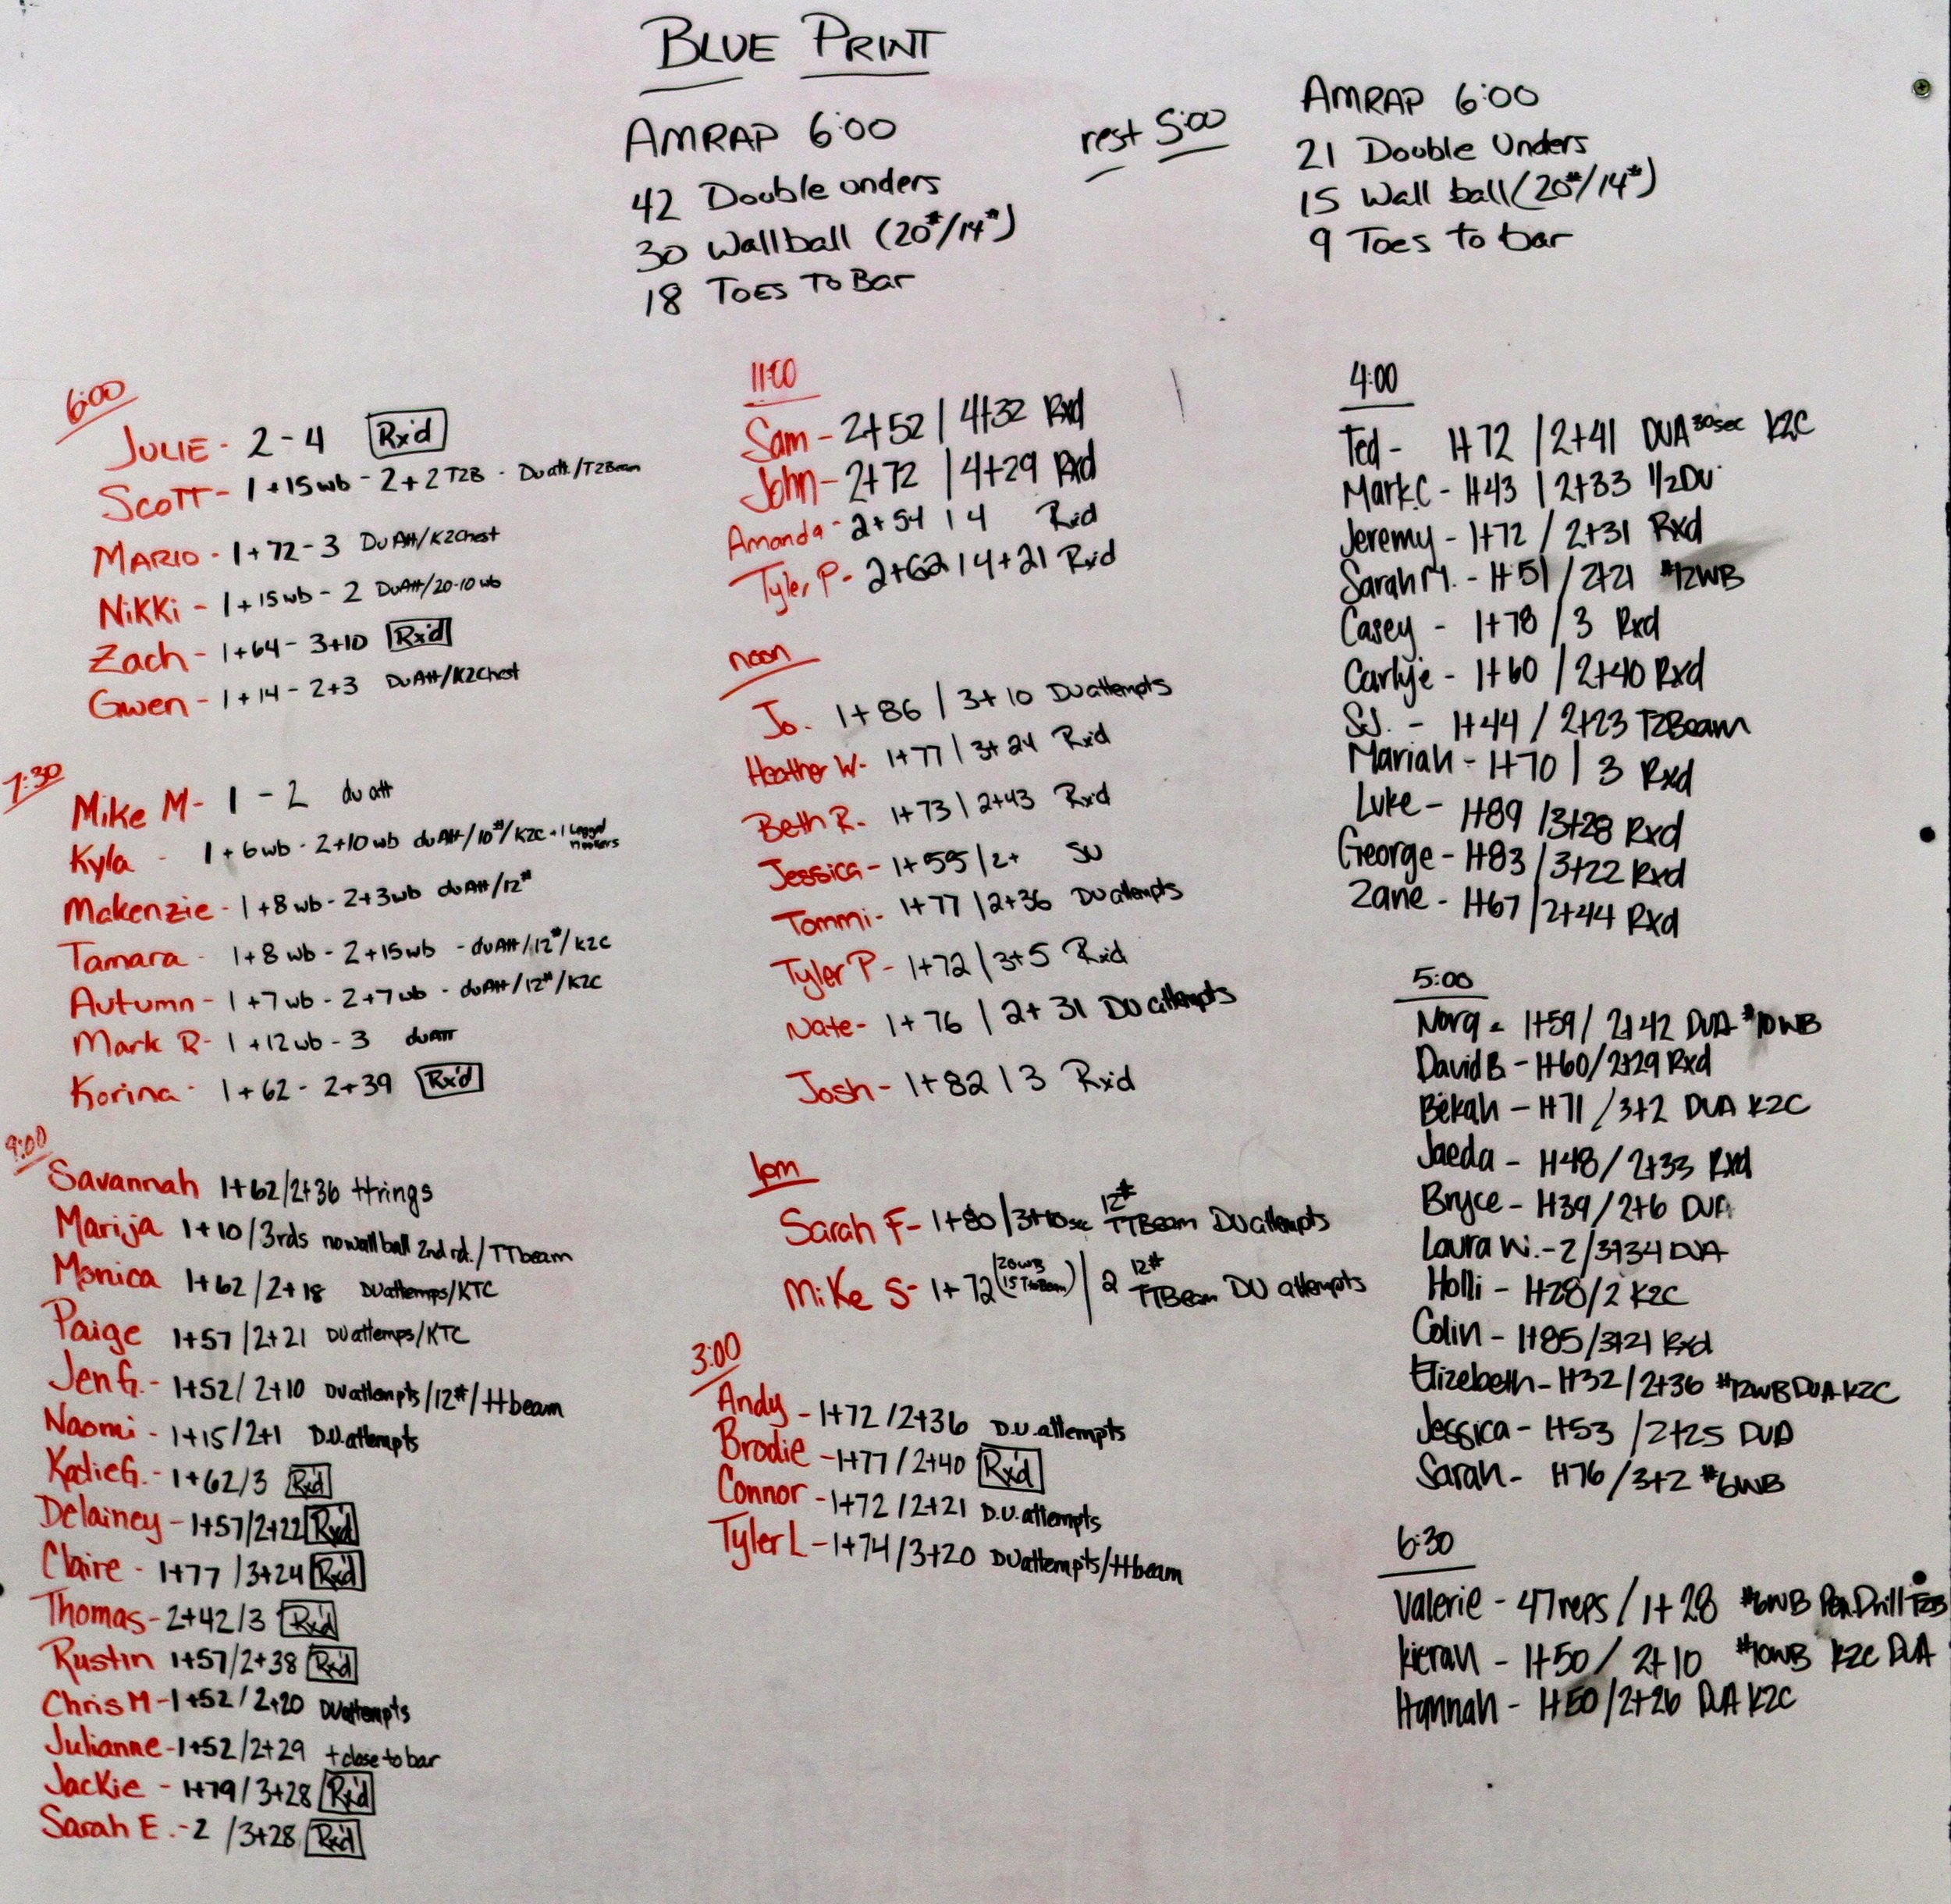 Crossfit wod blue print crossfit flagstaff blueprint part 1amrap 6 42 double unders 30 wallballs 2014 18 toes to bar rest 500 malvernweather Images